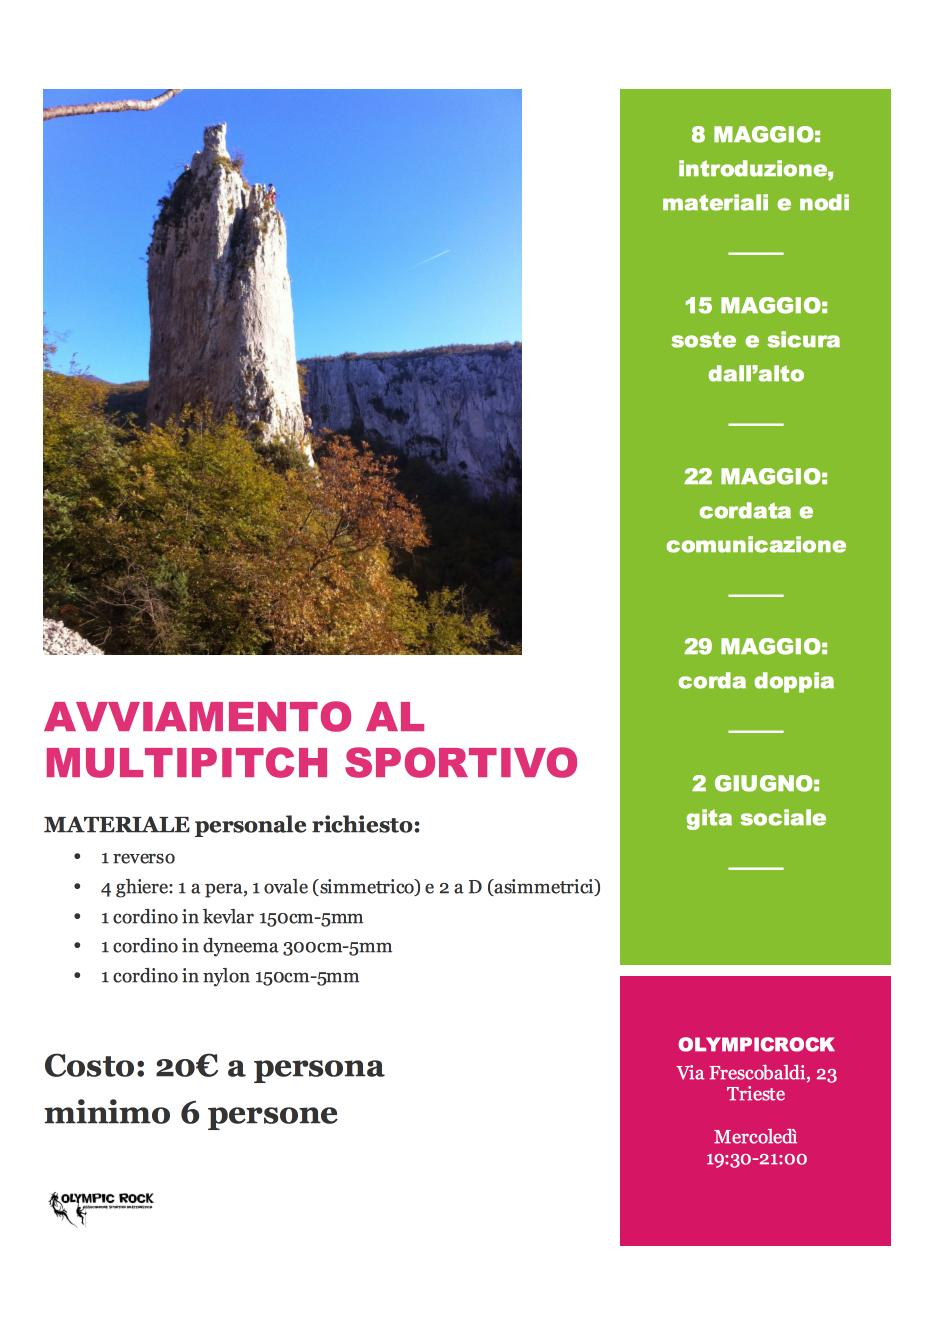 multipitch sportivo